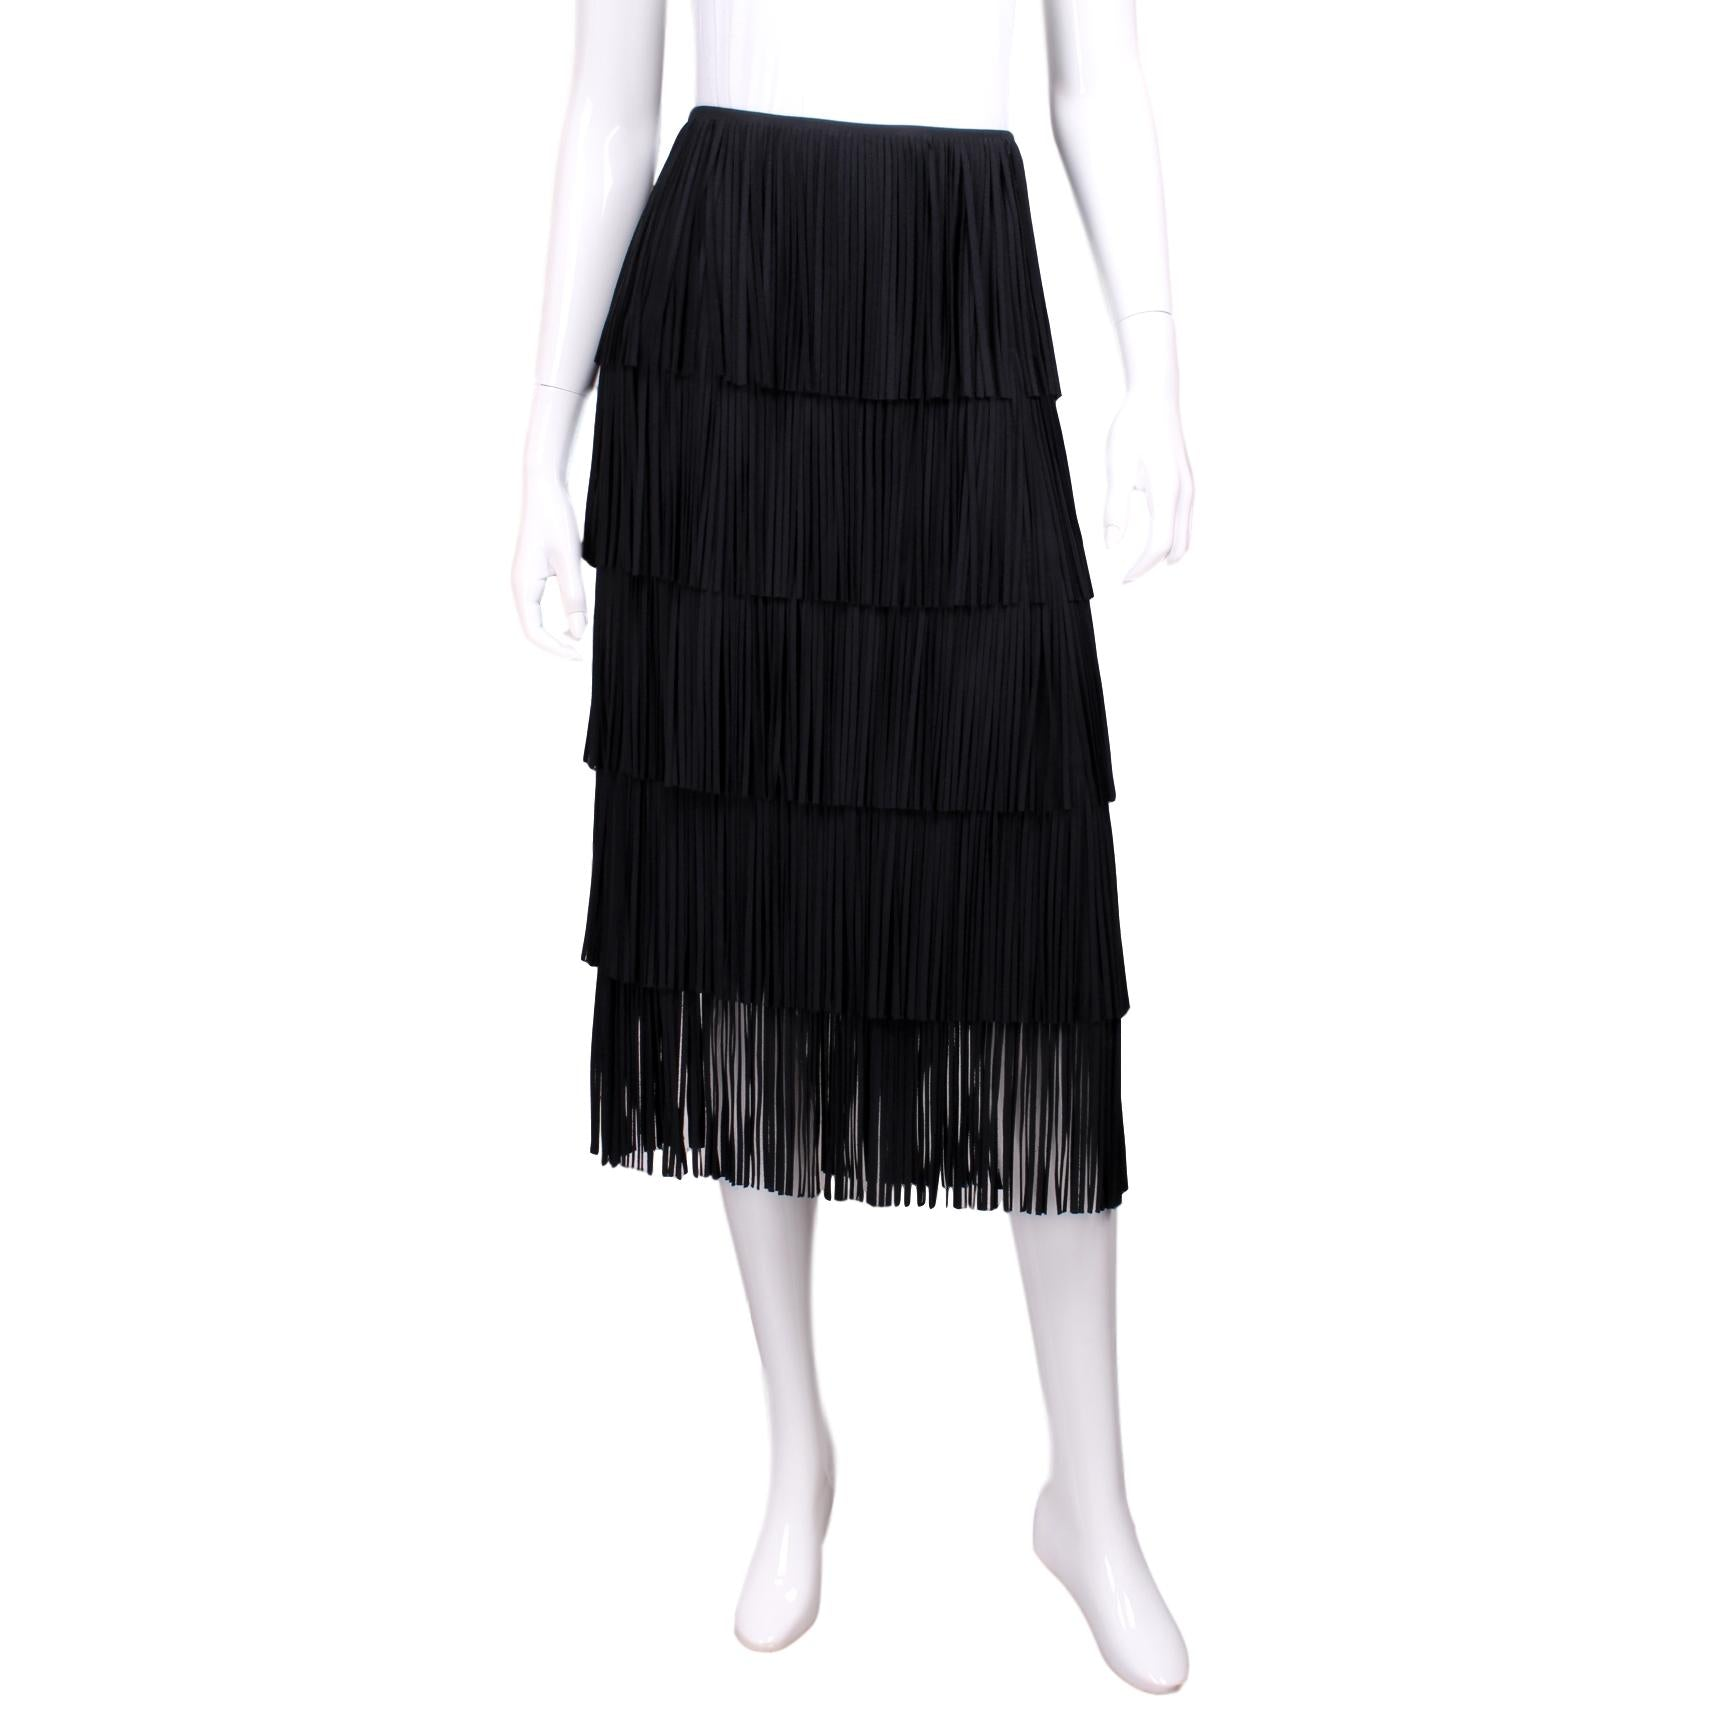 Outlet Cheap Authentic Fendi Fringed Knee-Length Skirt Purchase Cheap Sale Brand New Unisex For Sale Footlocker NX6czr